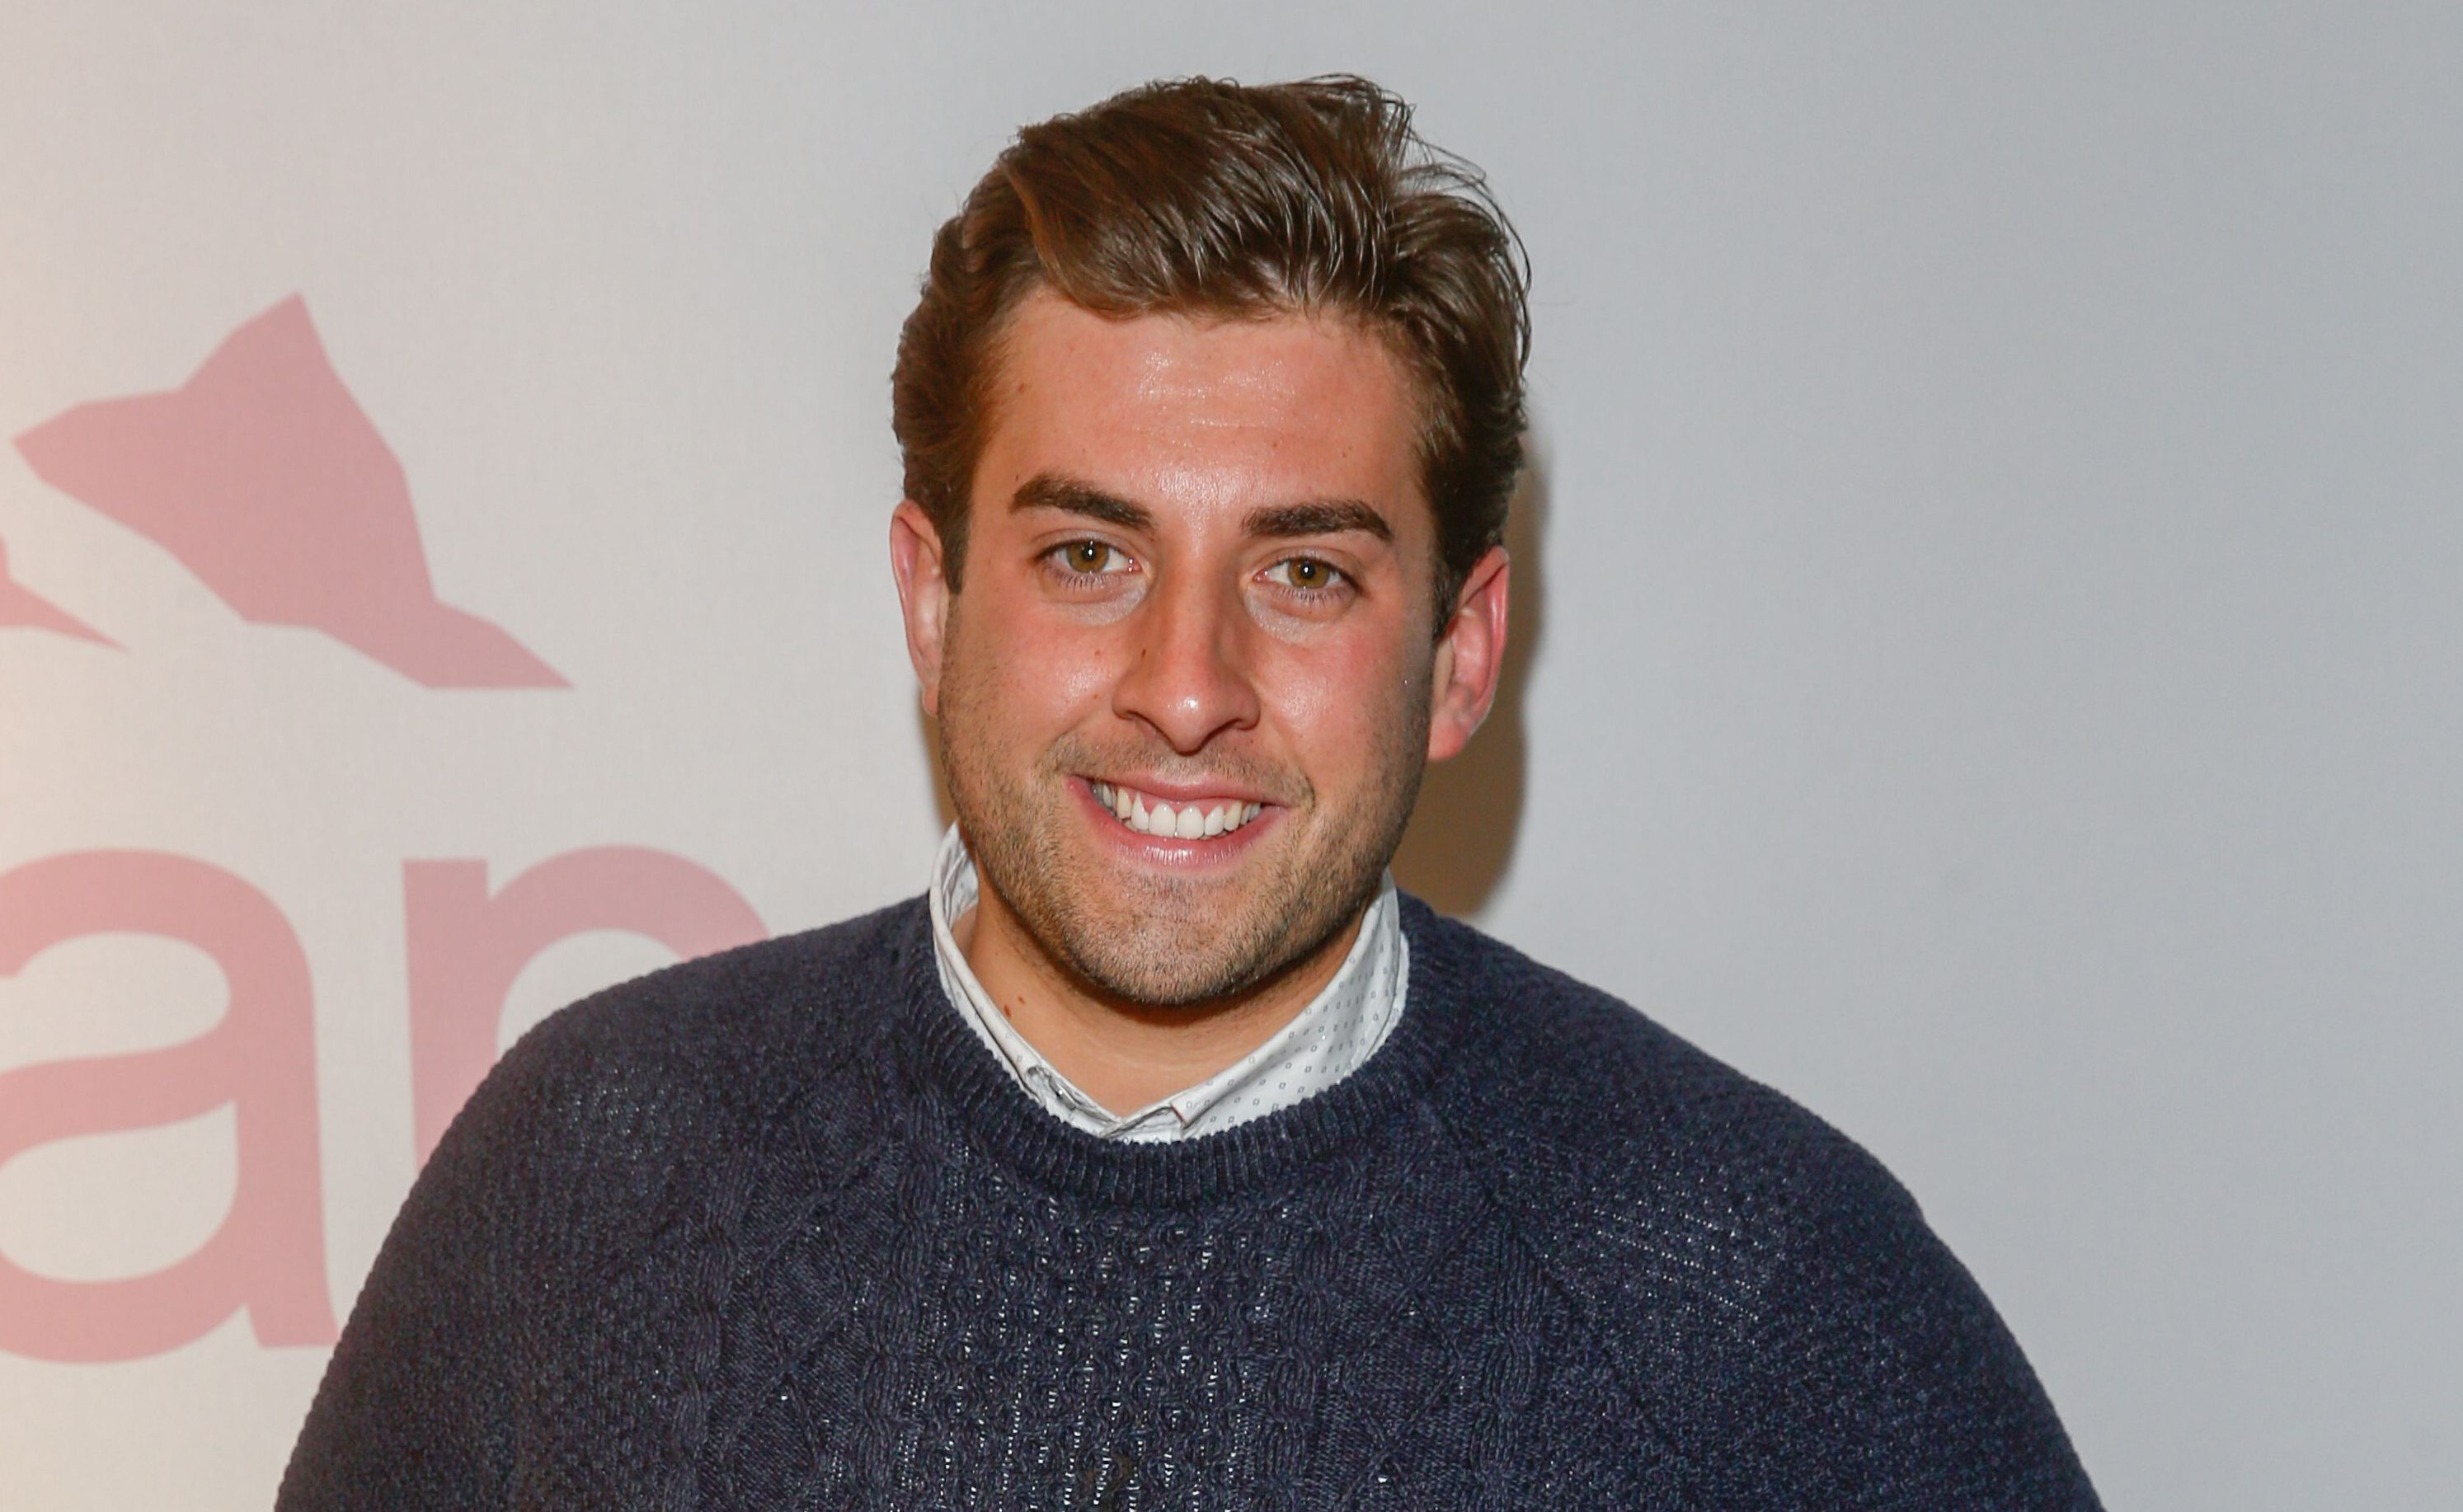 LONDON, ENGLAND - MARCH 15: James 'Arg' Argent attends the launch of Evian's new flavoured range at Liberty on March 15, 2016 in London, England. (Photo by Luca Teuchmann/Getty Images)